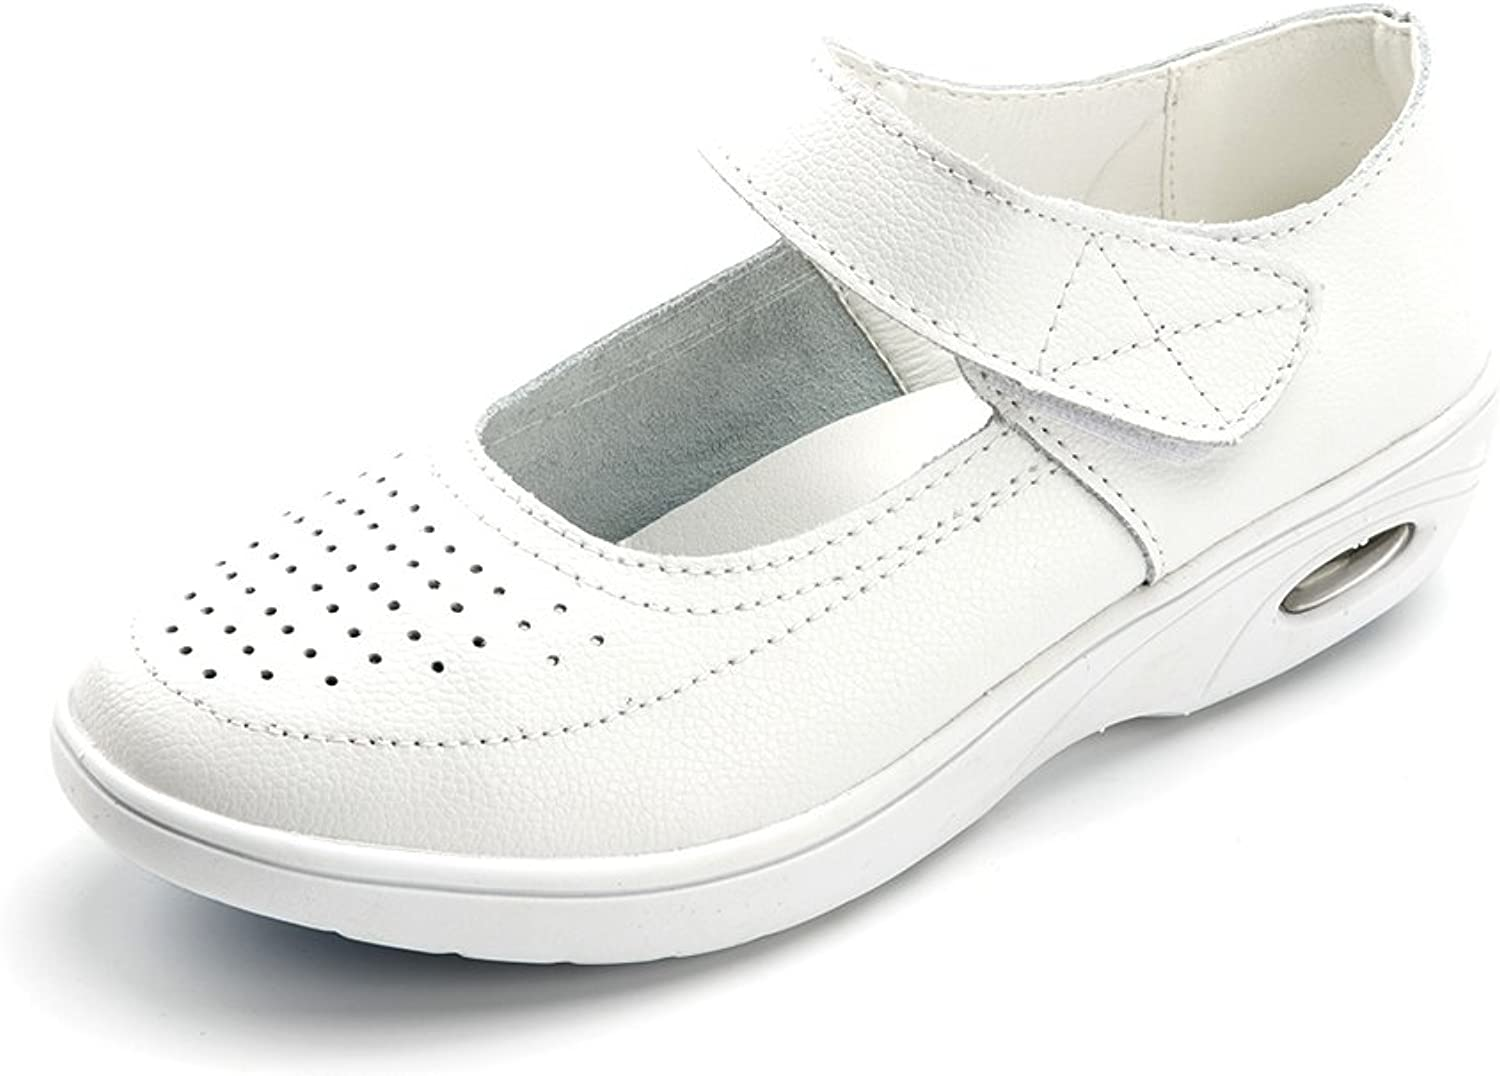 Vivident Genuine Leather Medical Loafers Soft Nurse shoes Professional Working Women Flats